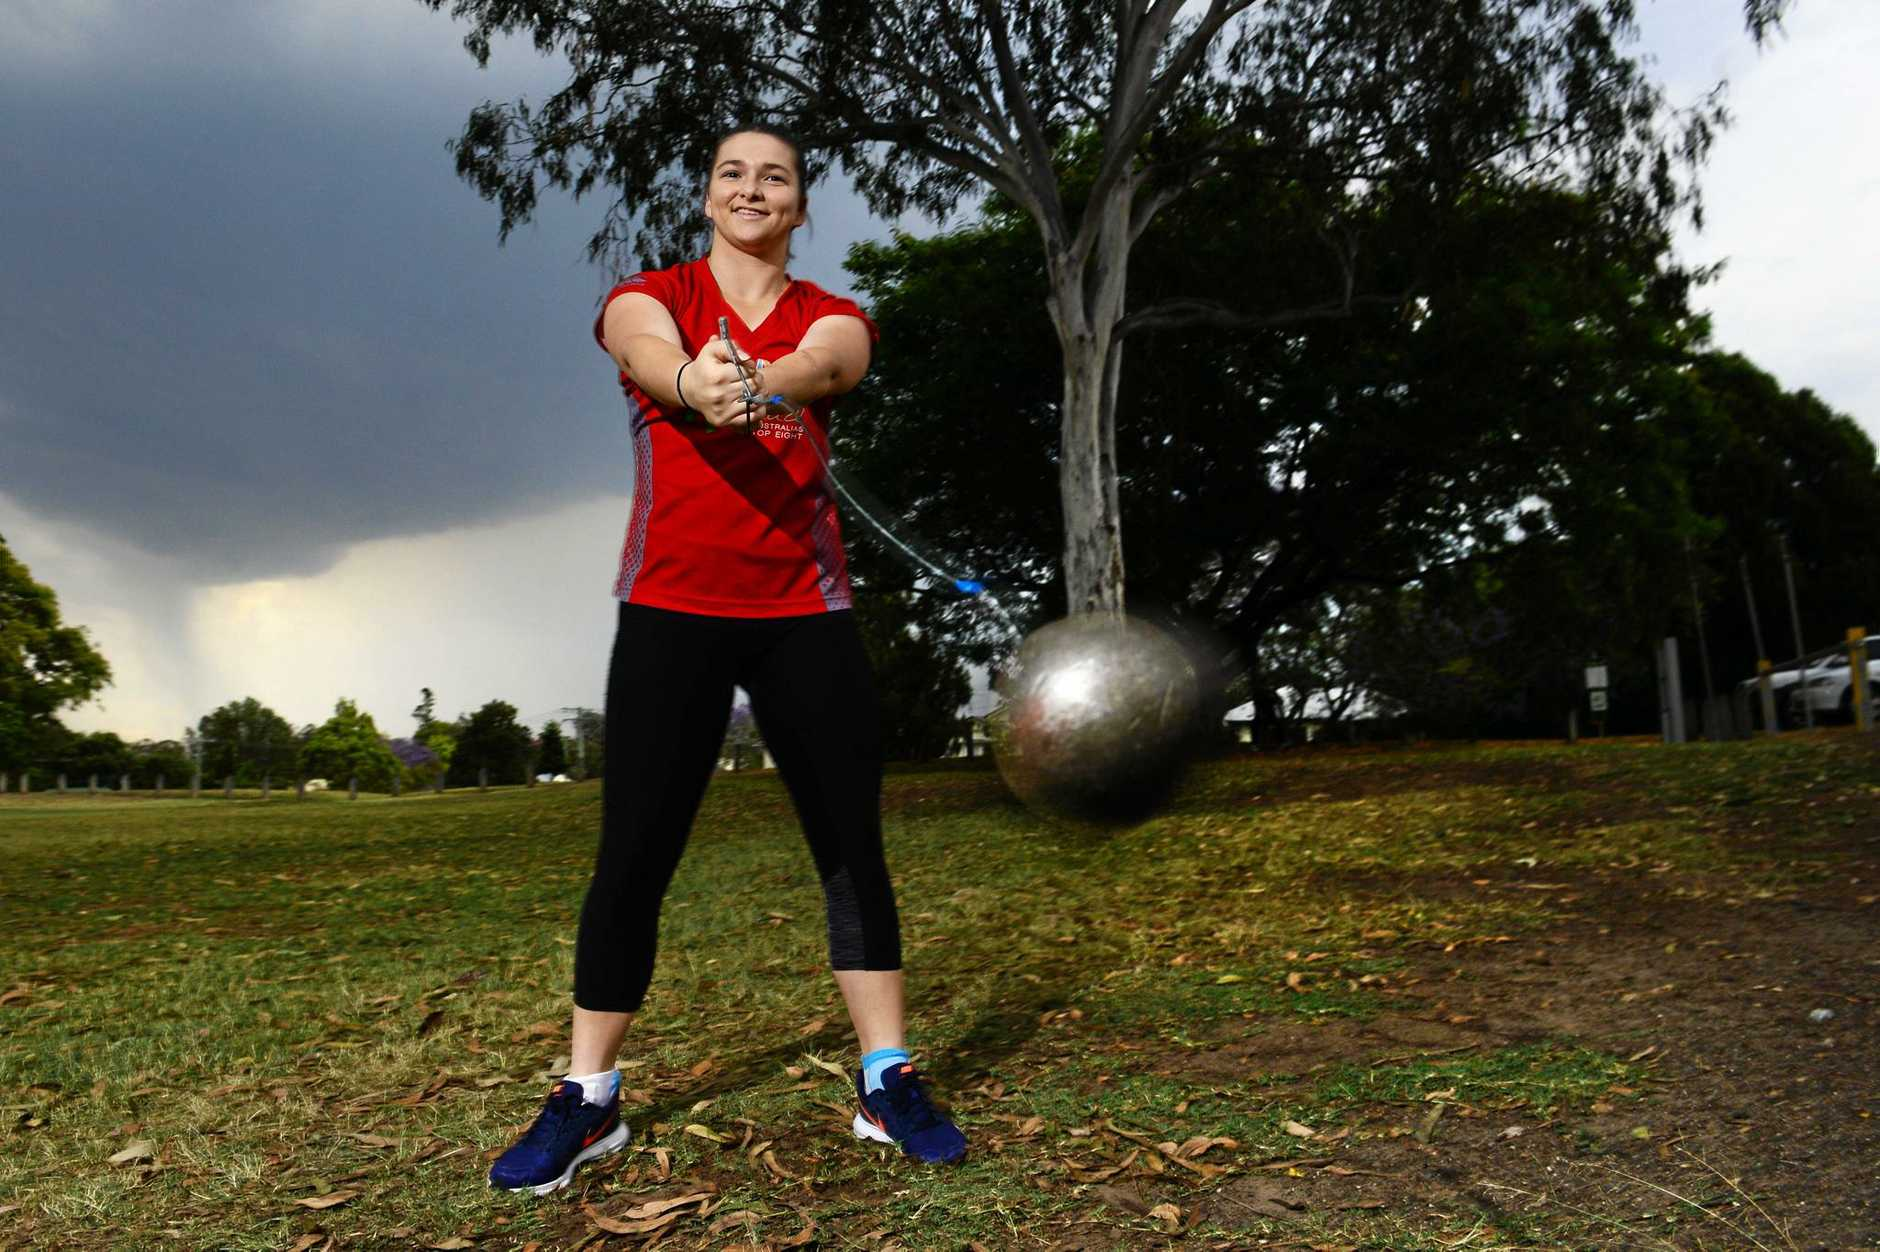 15-year-old Ipswich athlete Rochelle Vidler is setting records against older competitors.